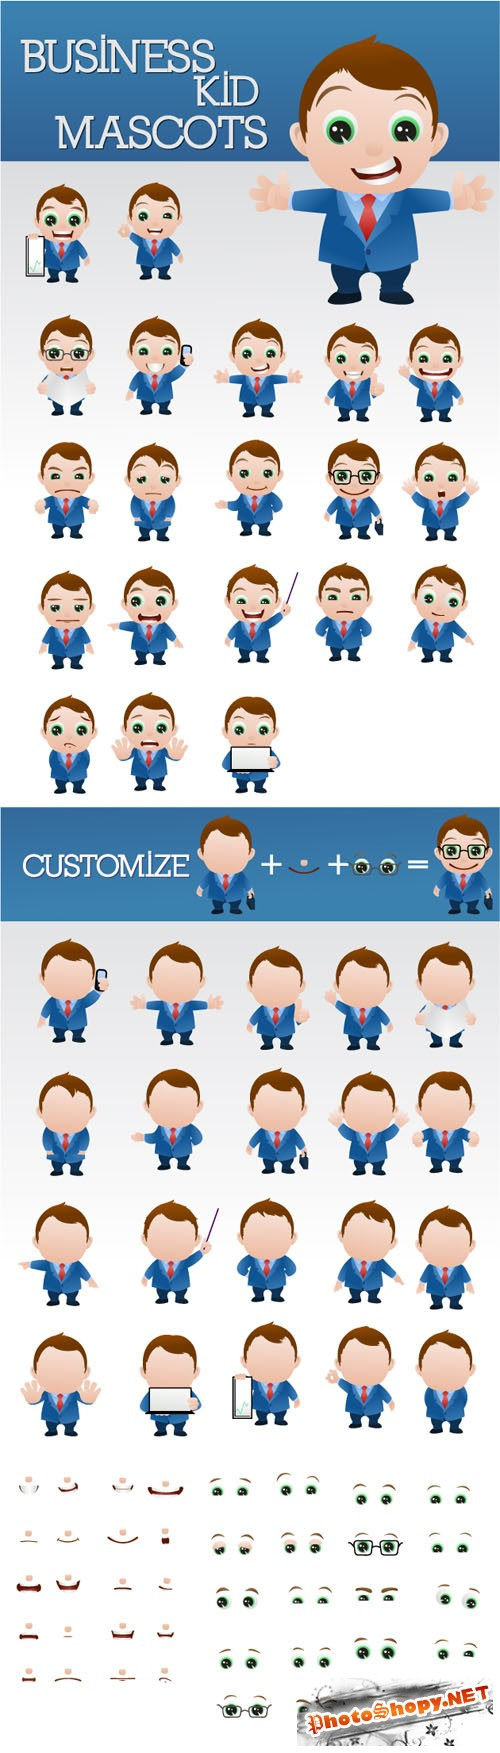 Designtnt - Business Man Mascots